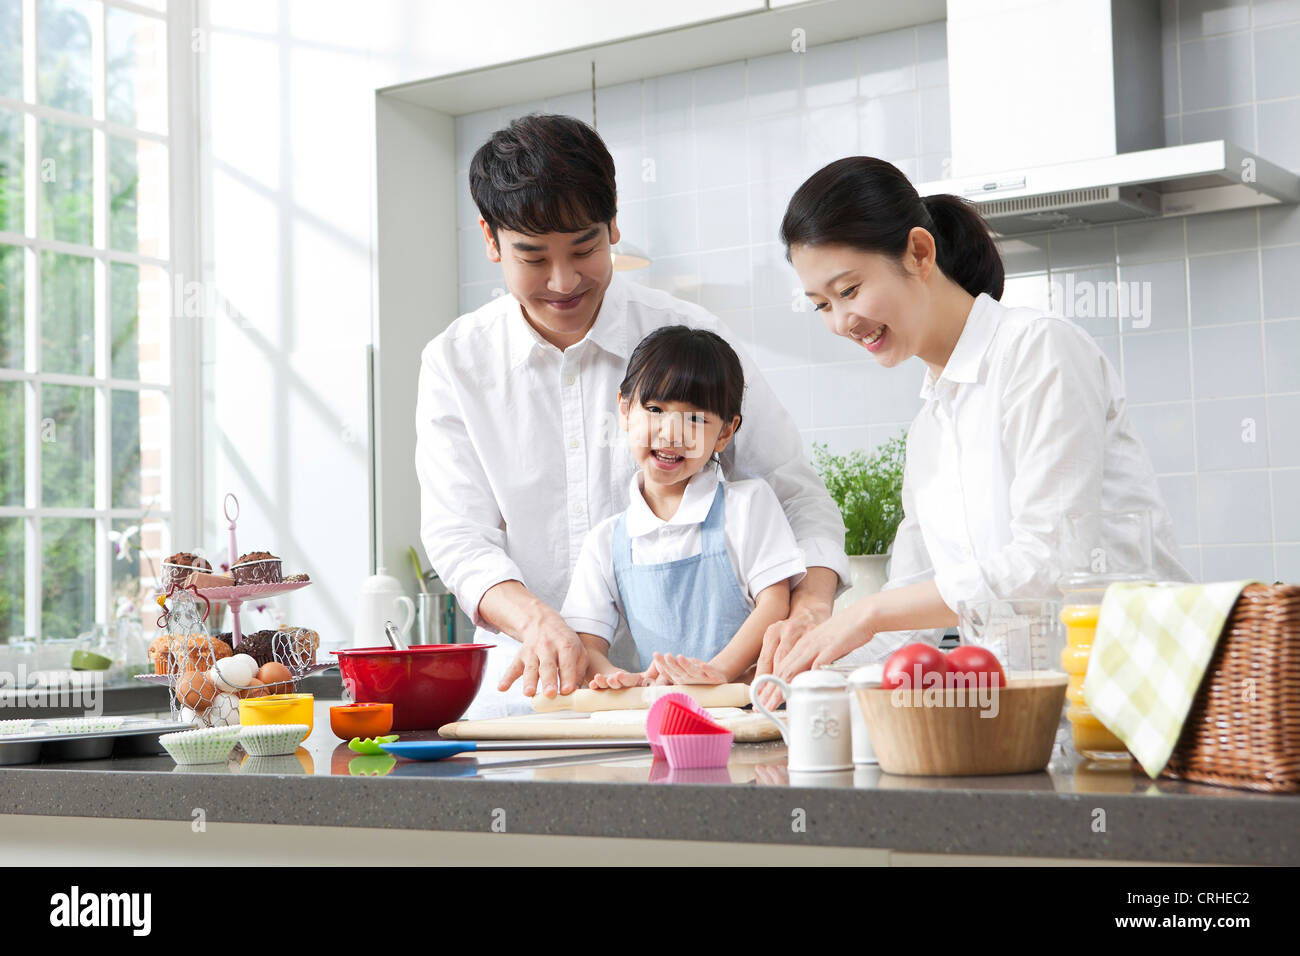 Family cooking kitchen - Happy Family Cooking In The Kitchen